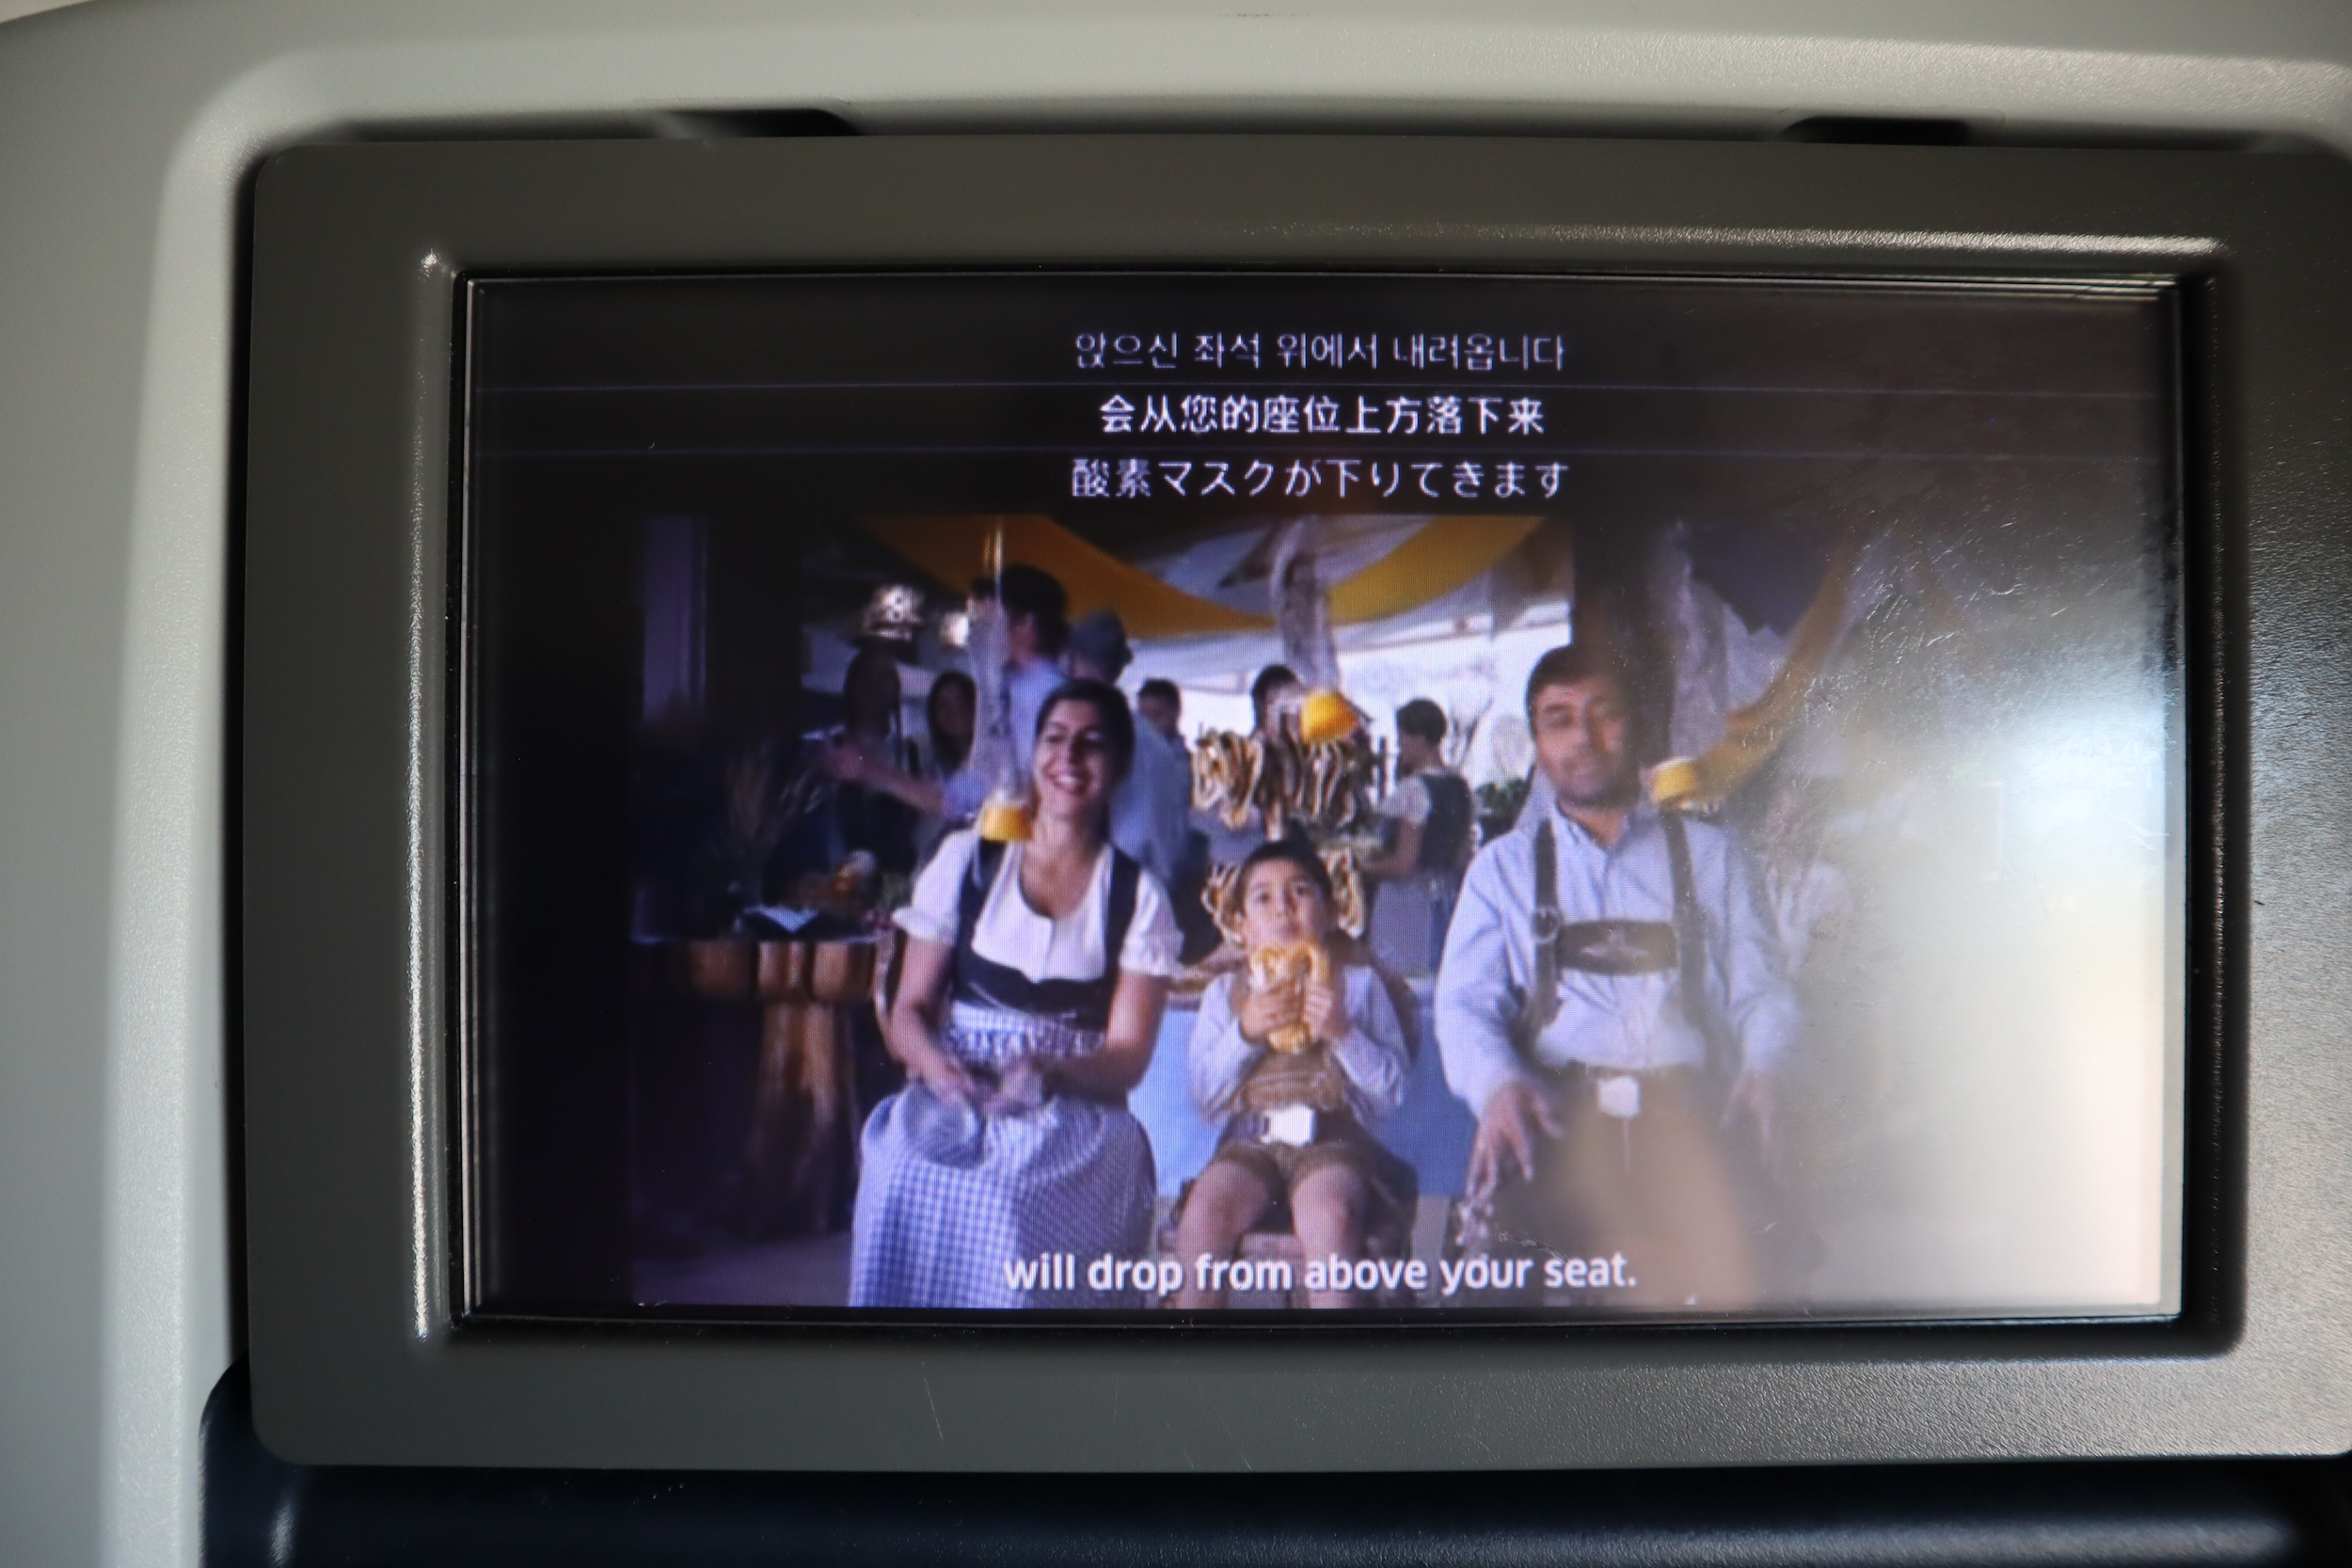 United 737 economy class – Safety video